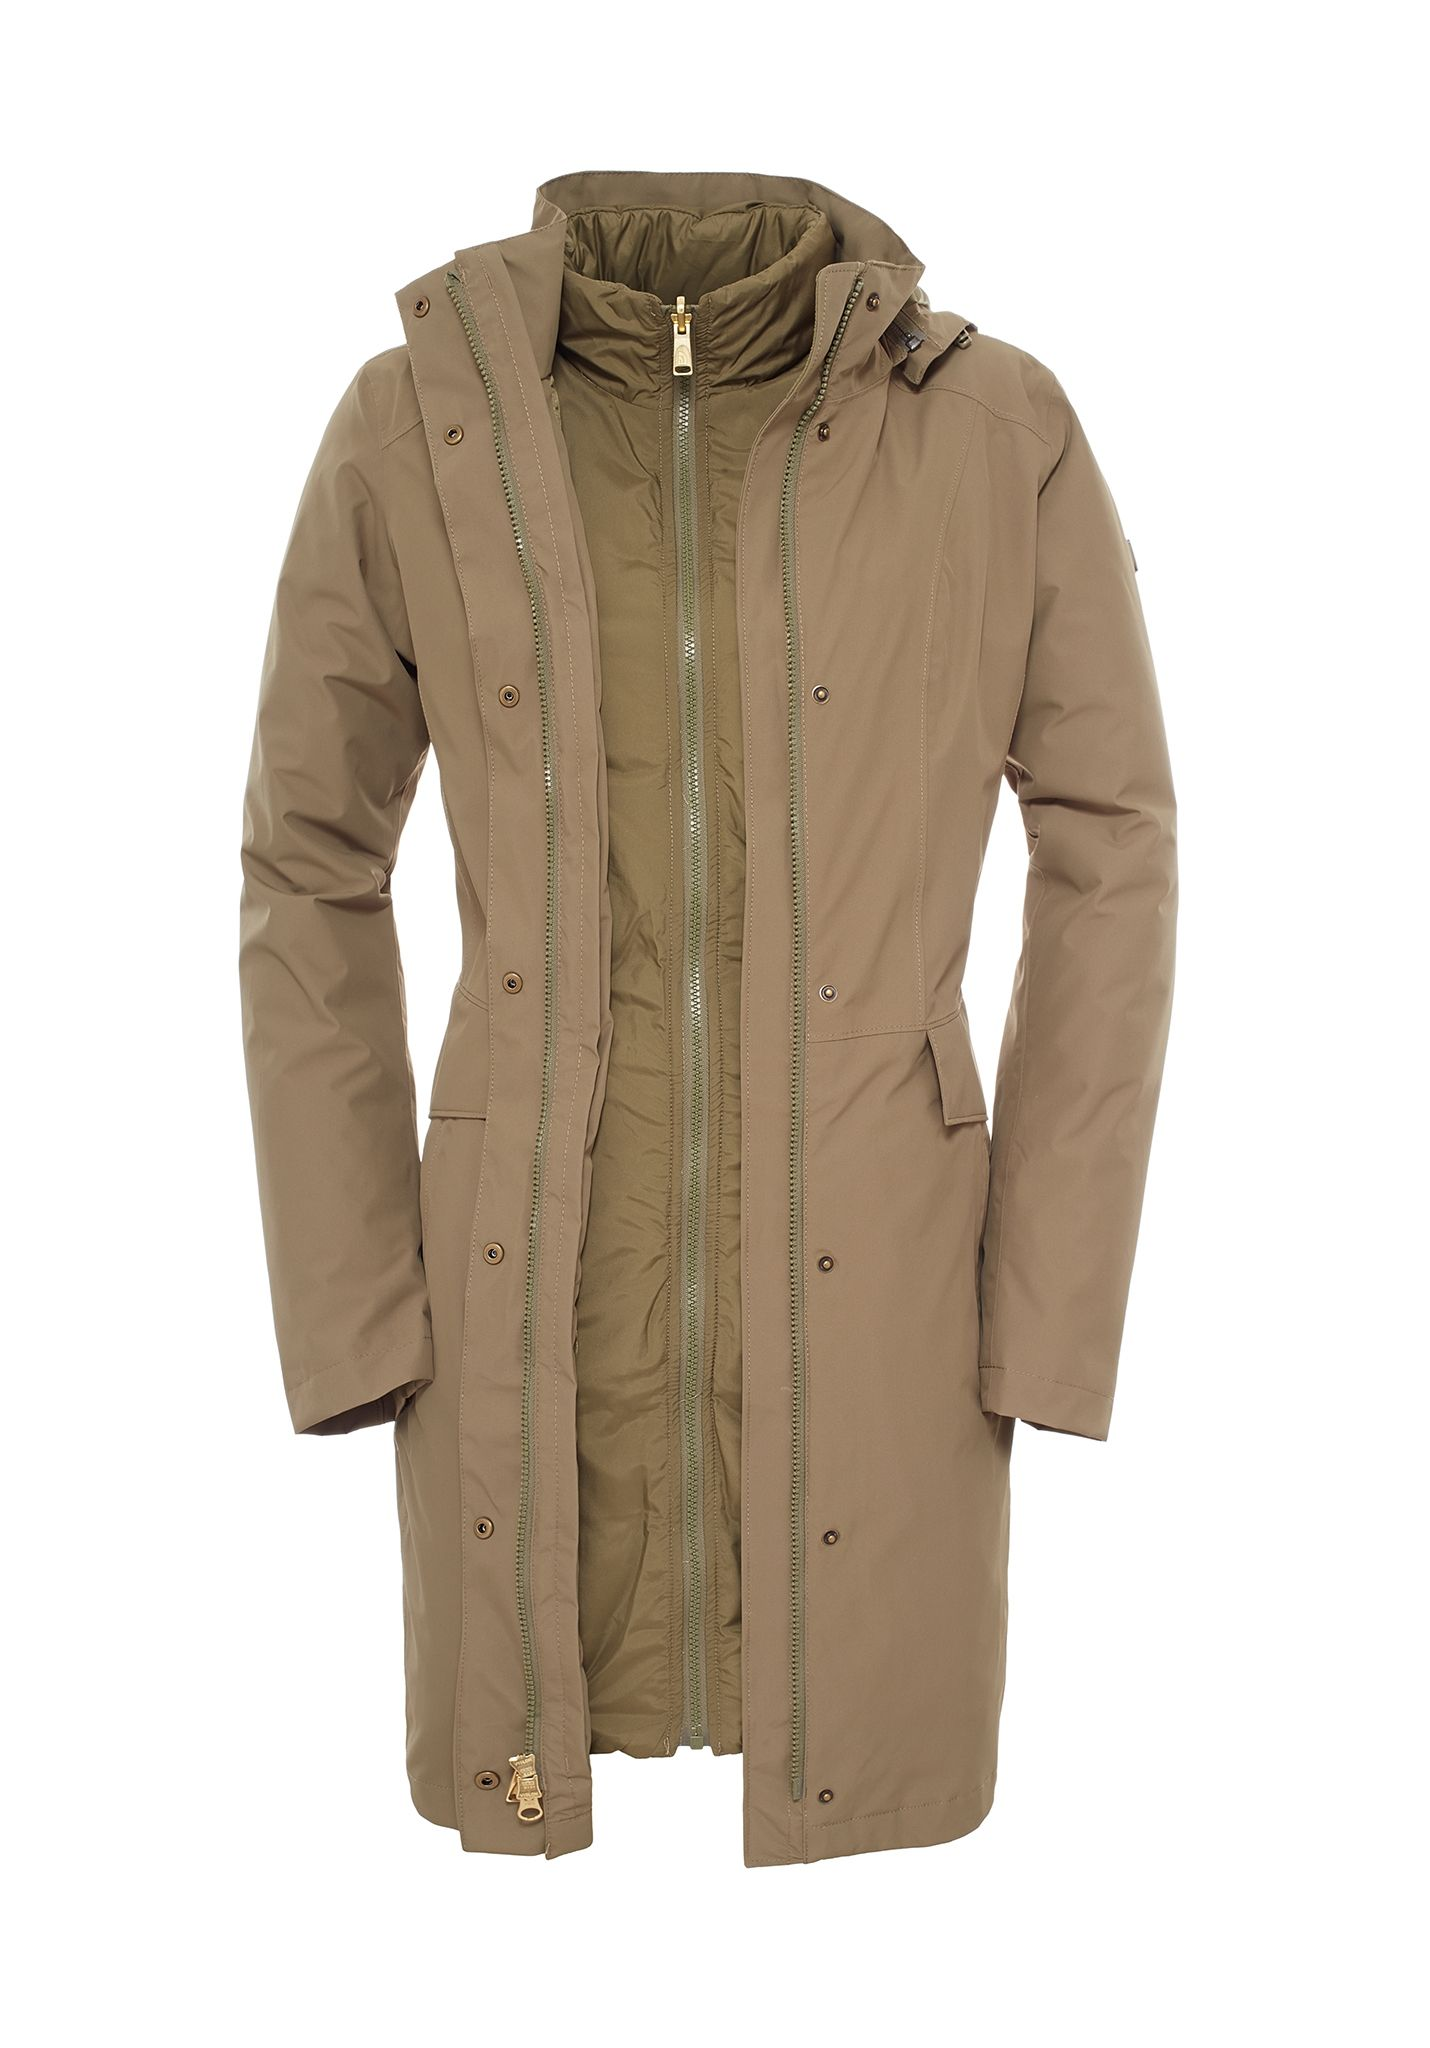 ee3e5e2350e3ca the-north-face-suzanne-triclimate-outdoor-jas-vrouwen-beige.jpg